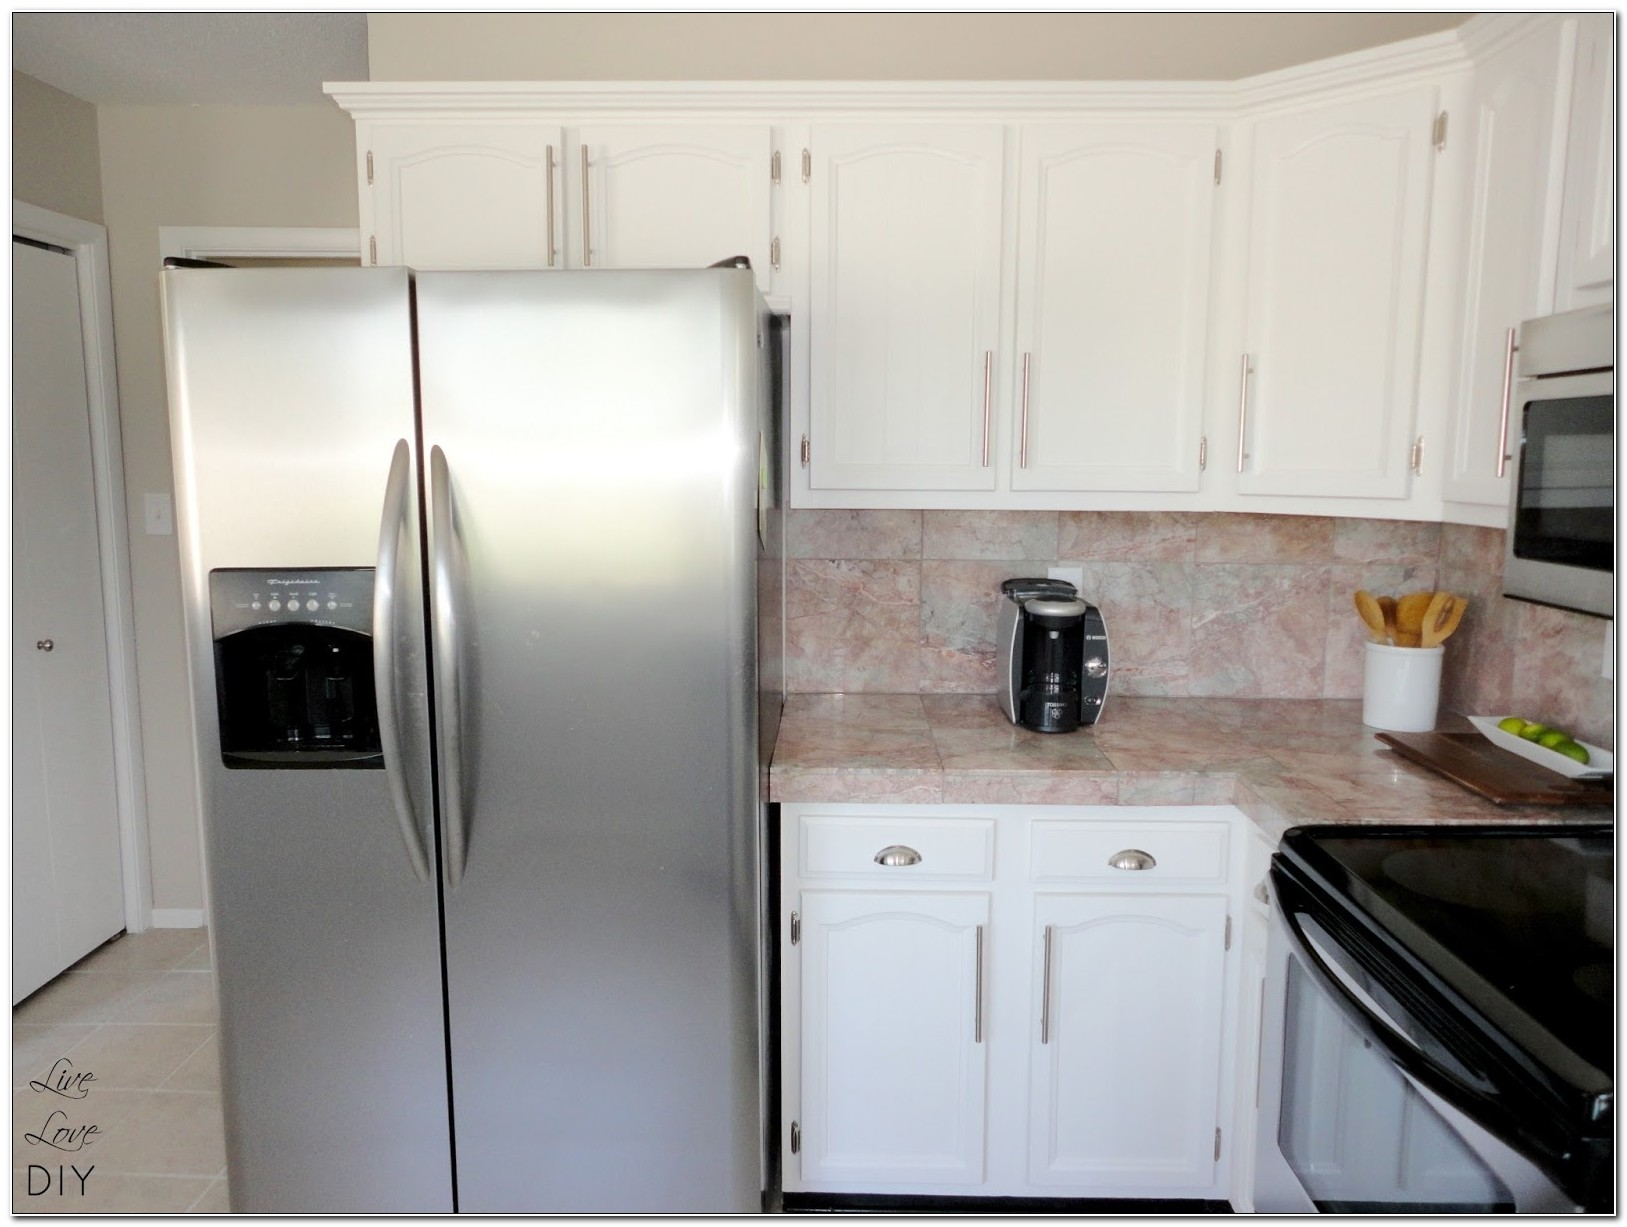 Refinishing Cabinets With White Paint